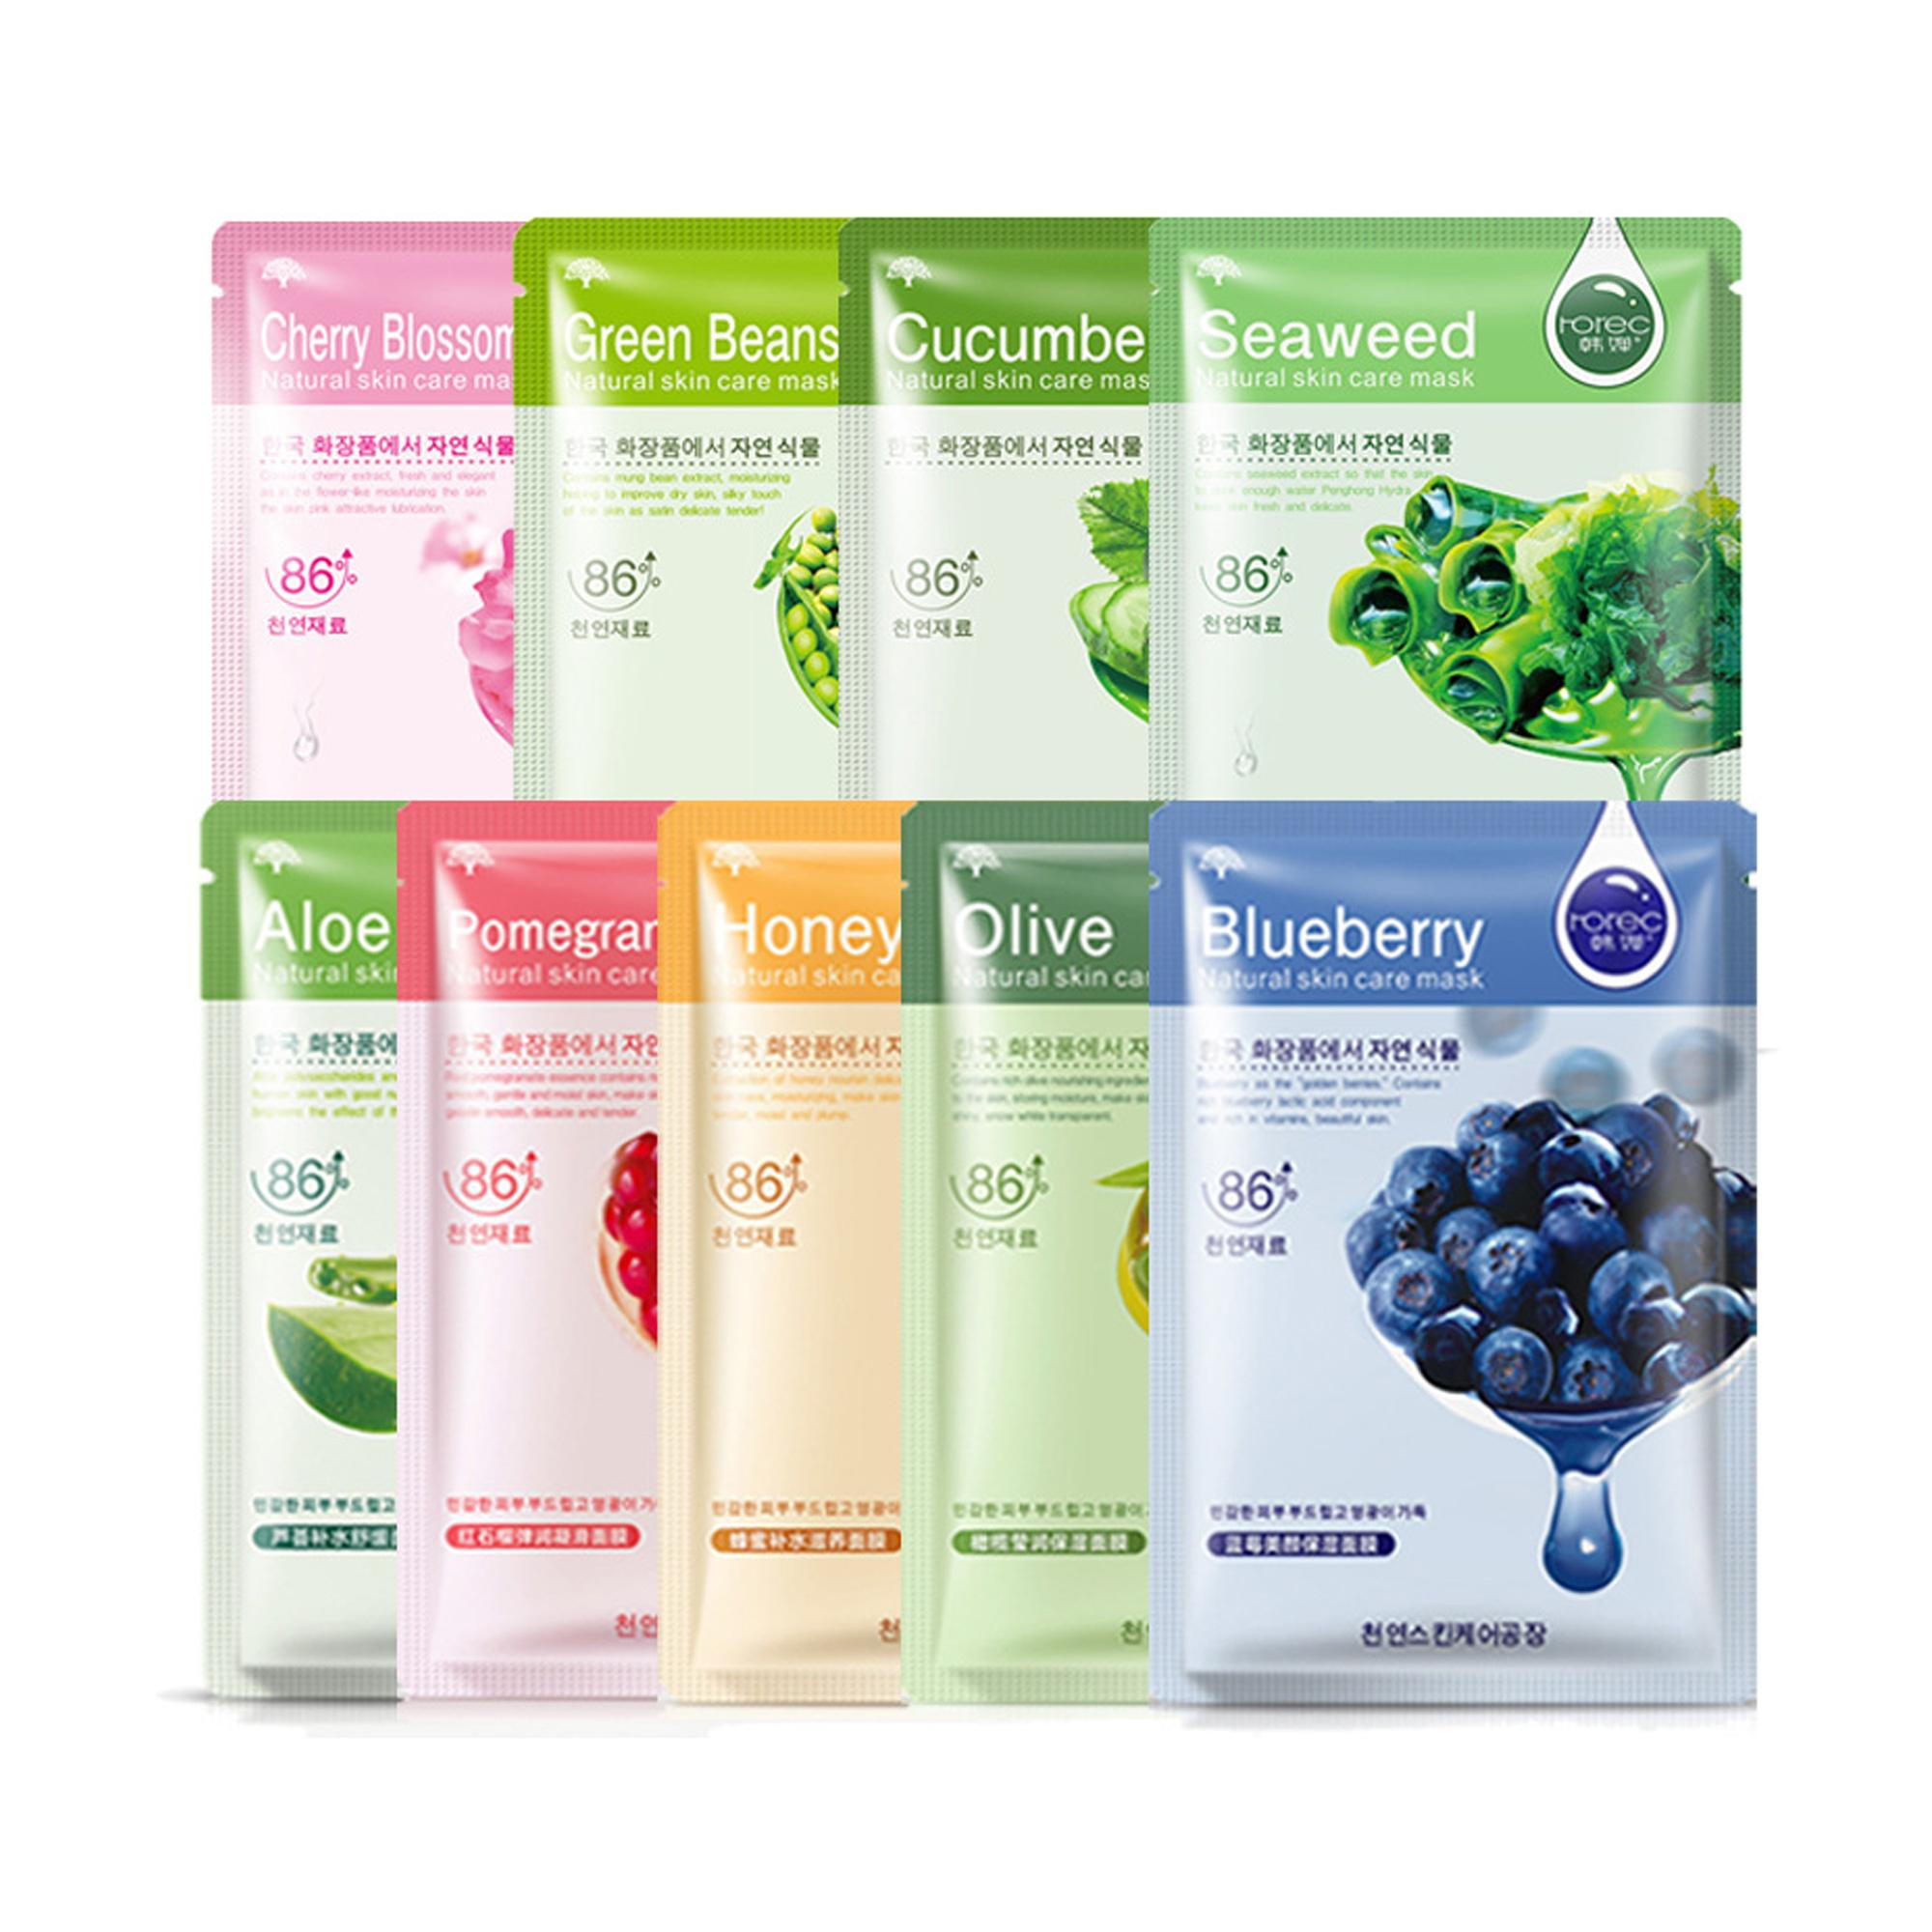 Buy Sell Cheapest 1 Pcs Face Best Quality Product Deals Nature Republic Mask Sheet Greentea Bundling 3pcs Amog Rorec Soft Skin Natural Moisturizing Extracts Set Of Aloe 1pcs